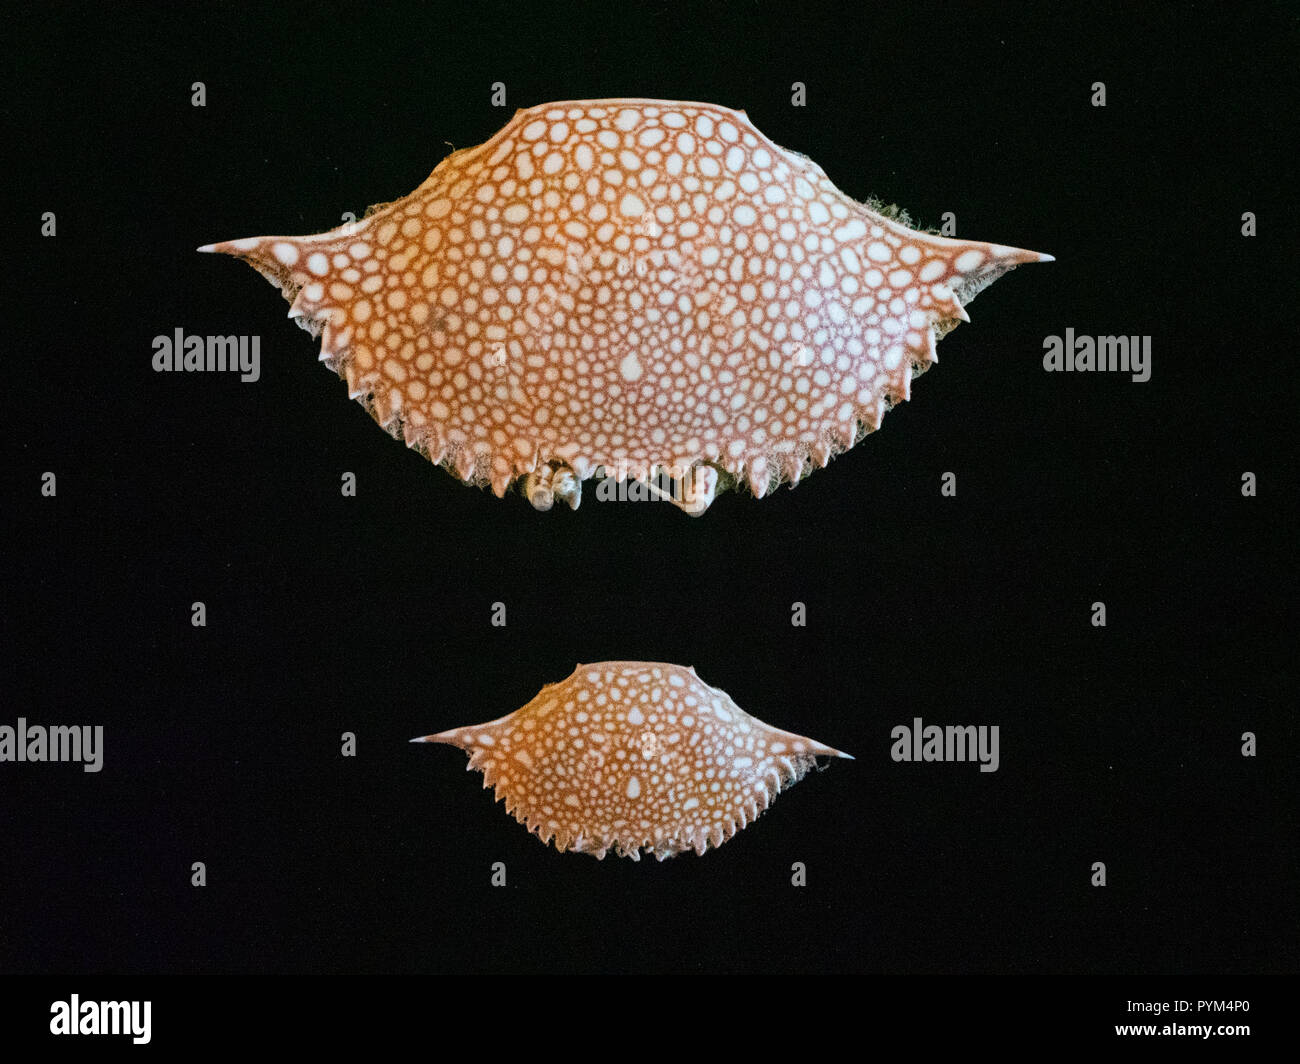 Carapaces of speckled swimming crab Arenaeus cribrarius from Tybee Island near Savannah Georgia USA - Stock Image